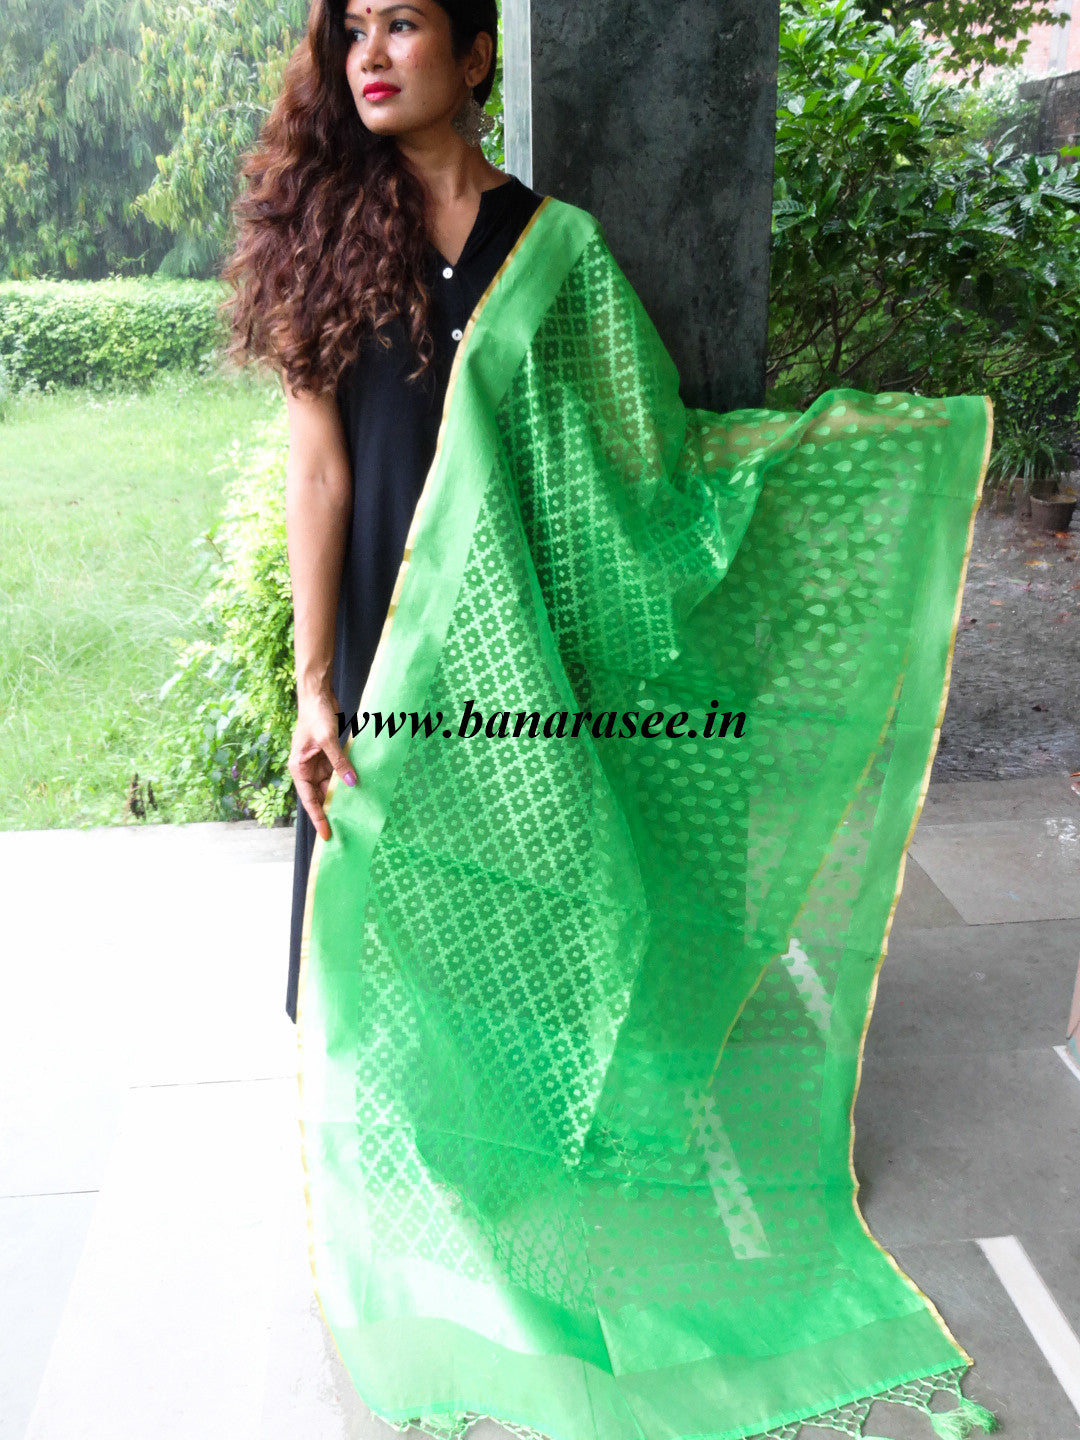 Banarasee/ Banarasi Net patterned Dupatta-Light Green